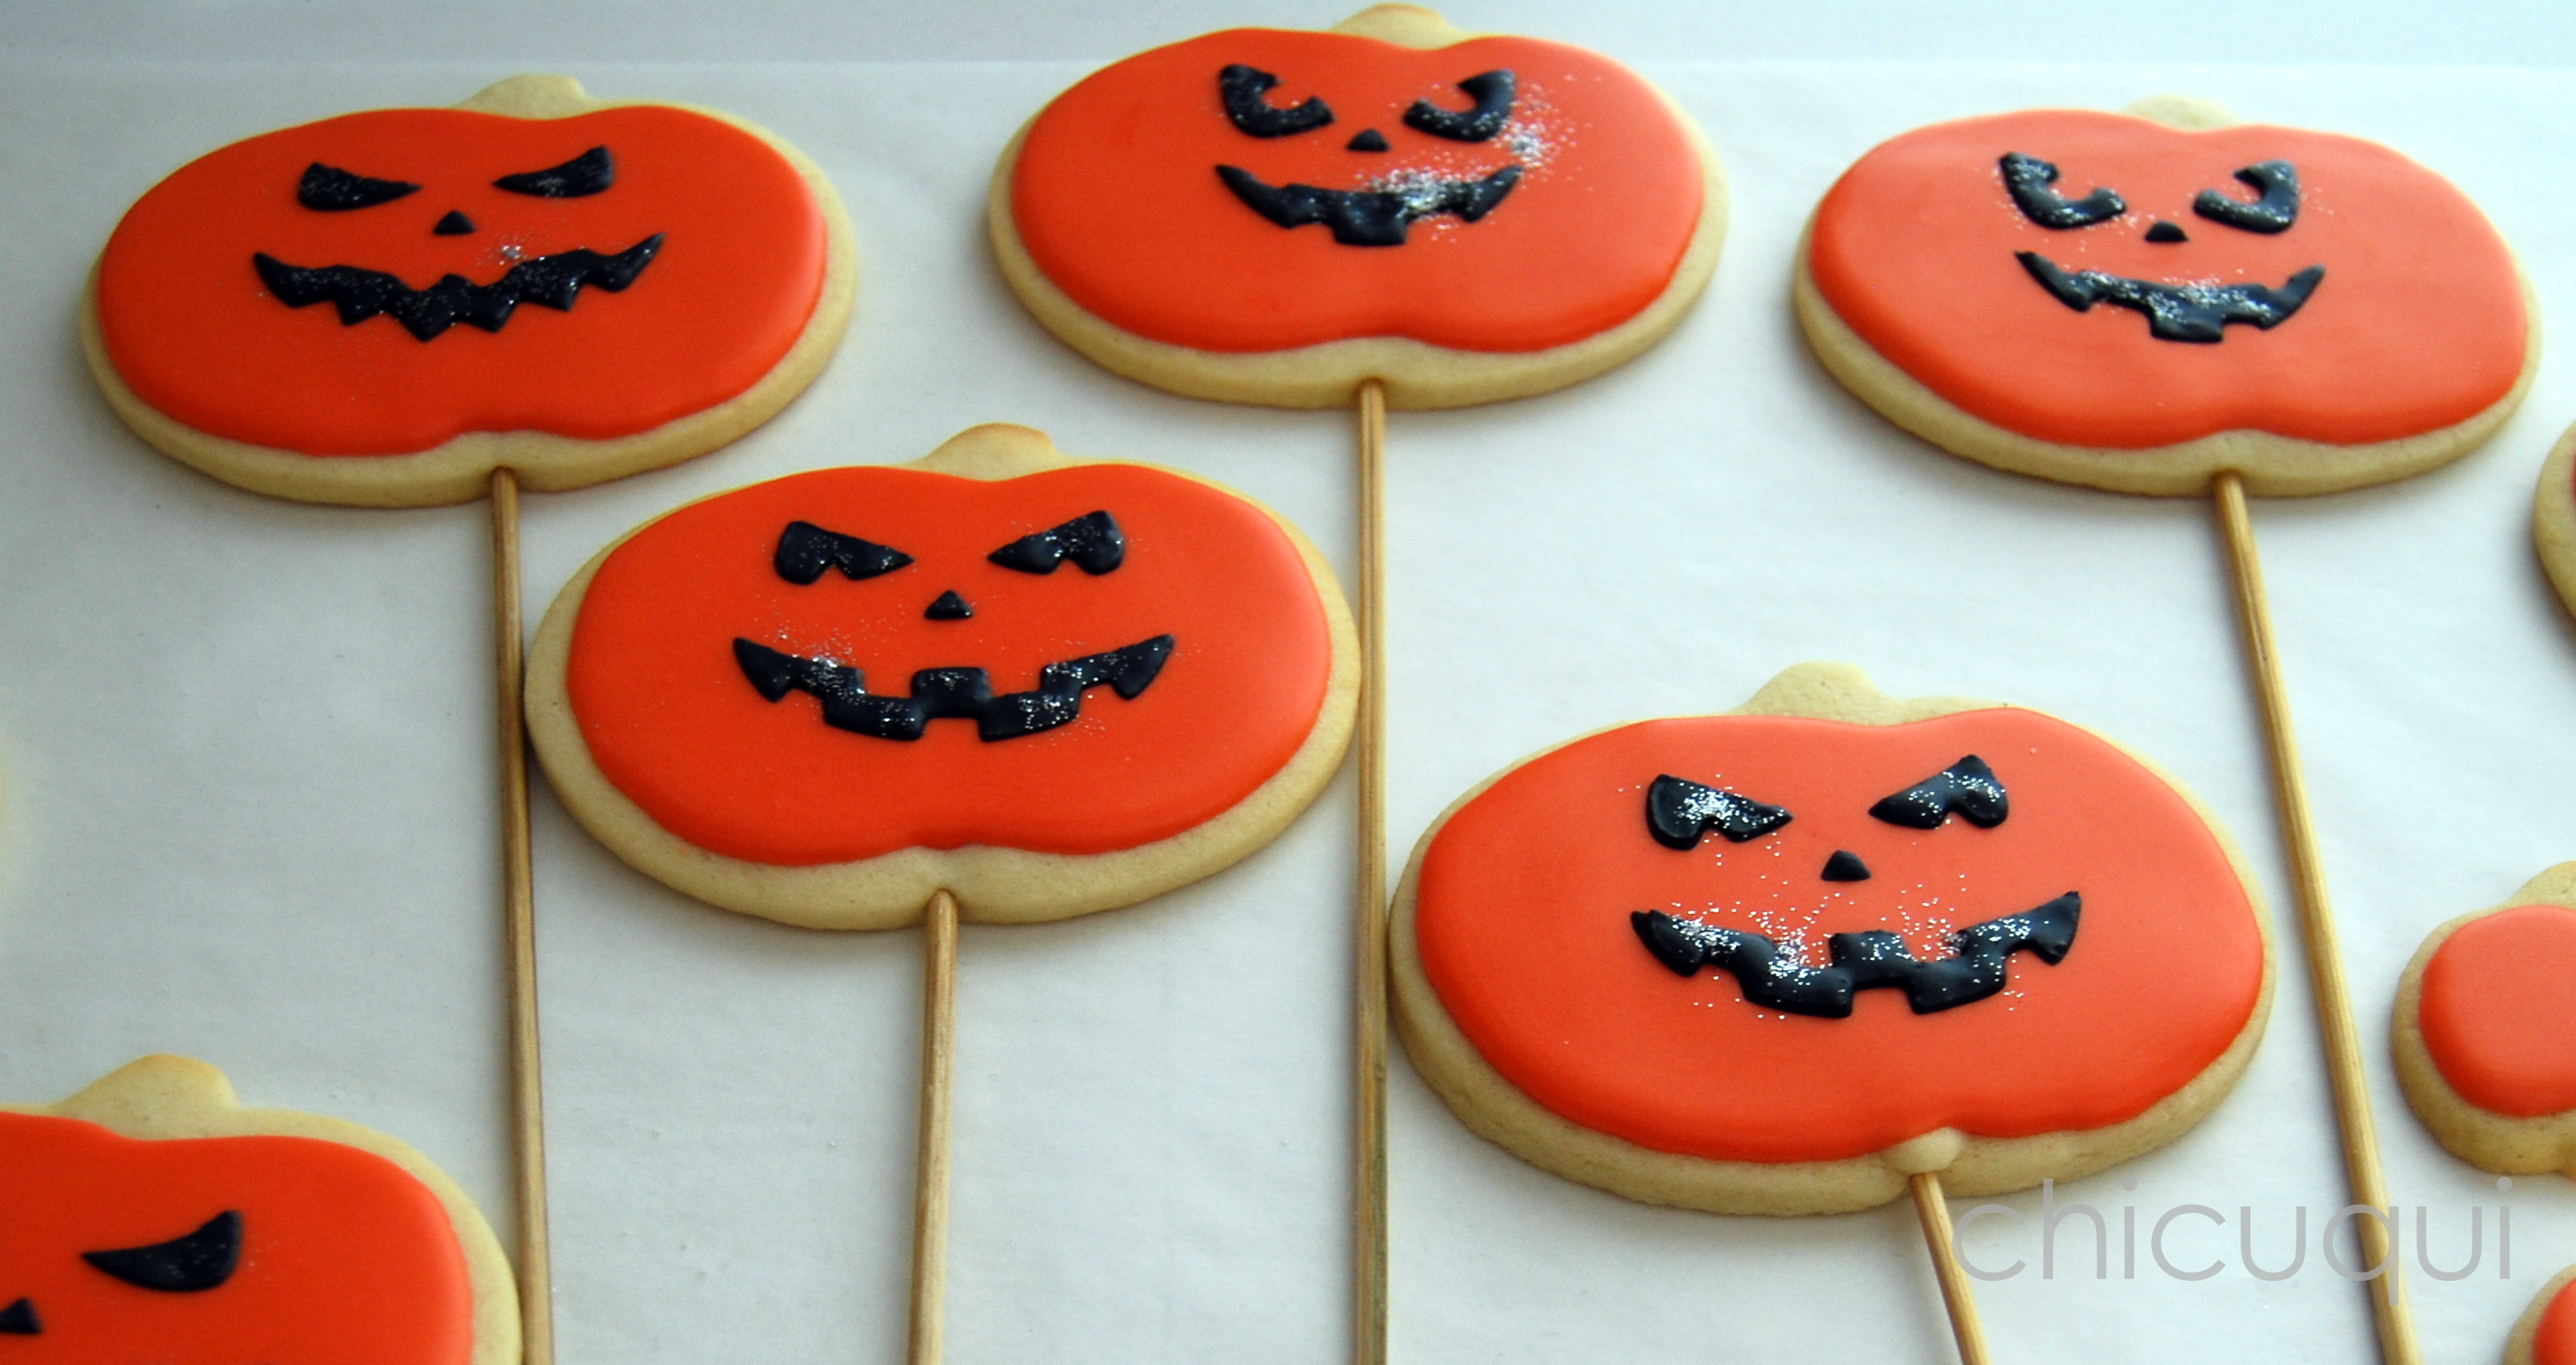 Galletas Decoradas Hallowen Tutorial Calabazas De Halloween Chicuqui